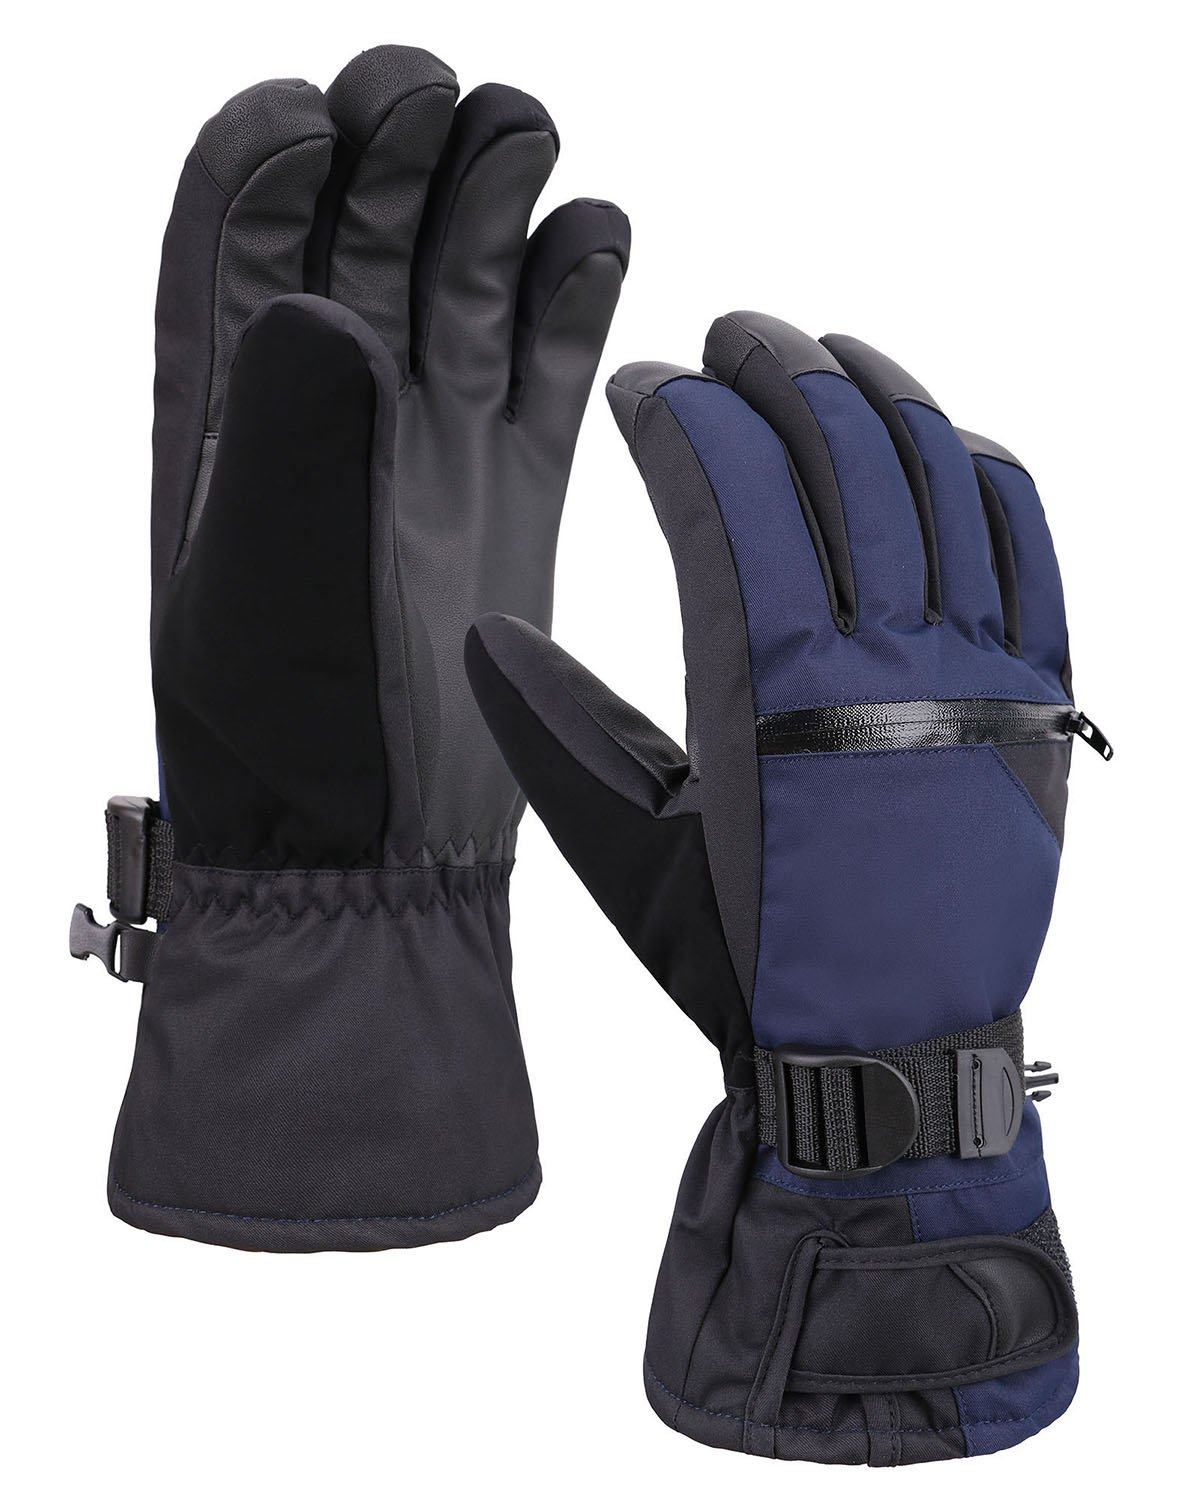 Mens Breathable Waterproof Thinsulate Cold Weather Ski Snowboard Gloves,Navy,L